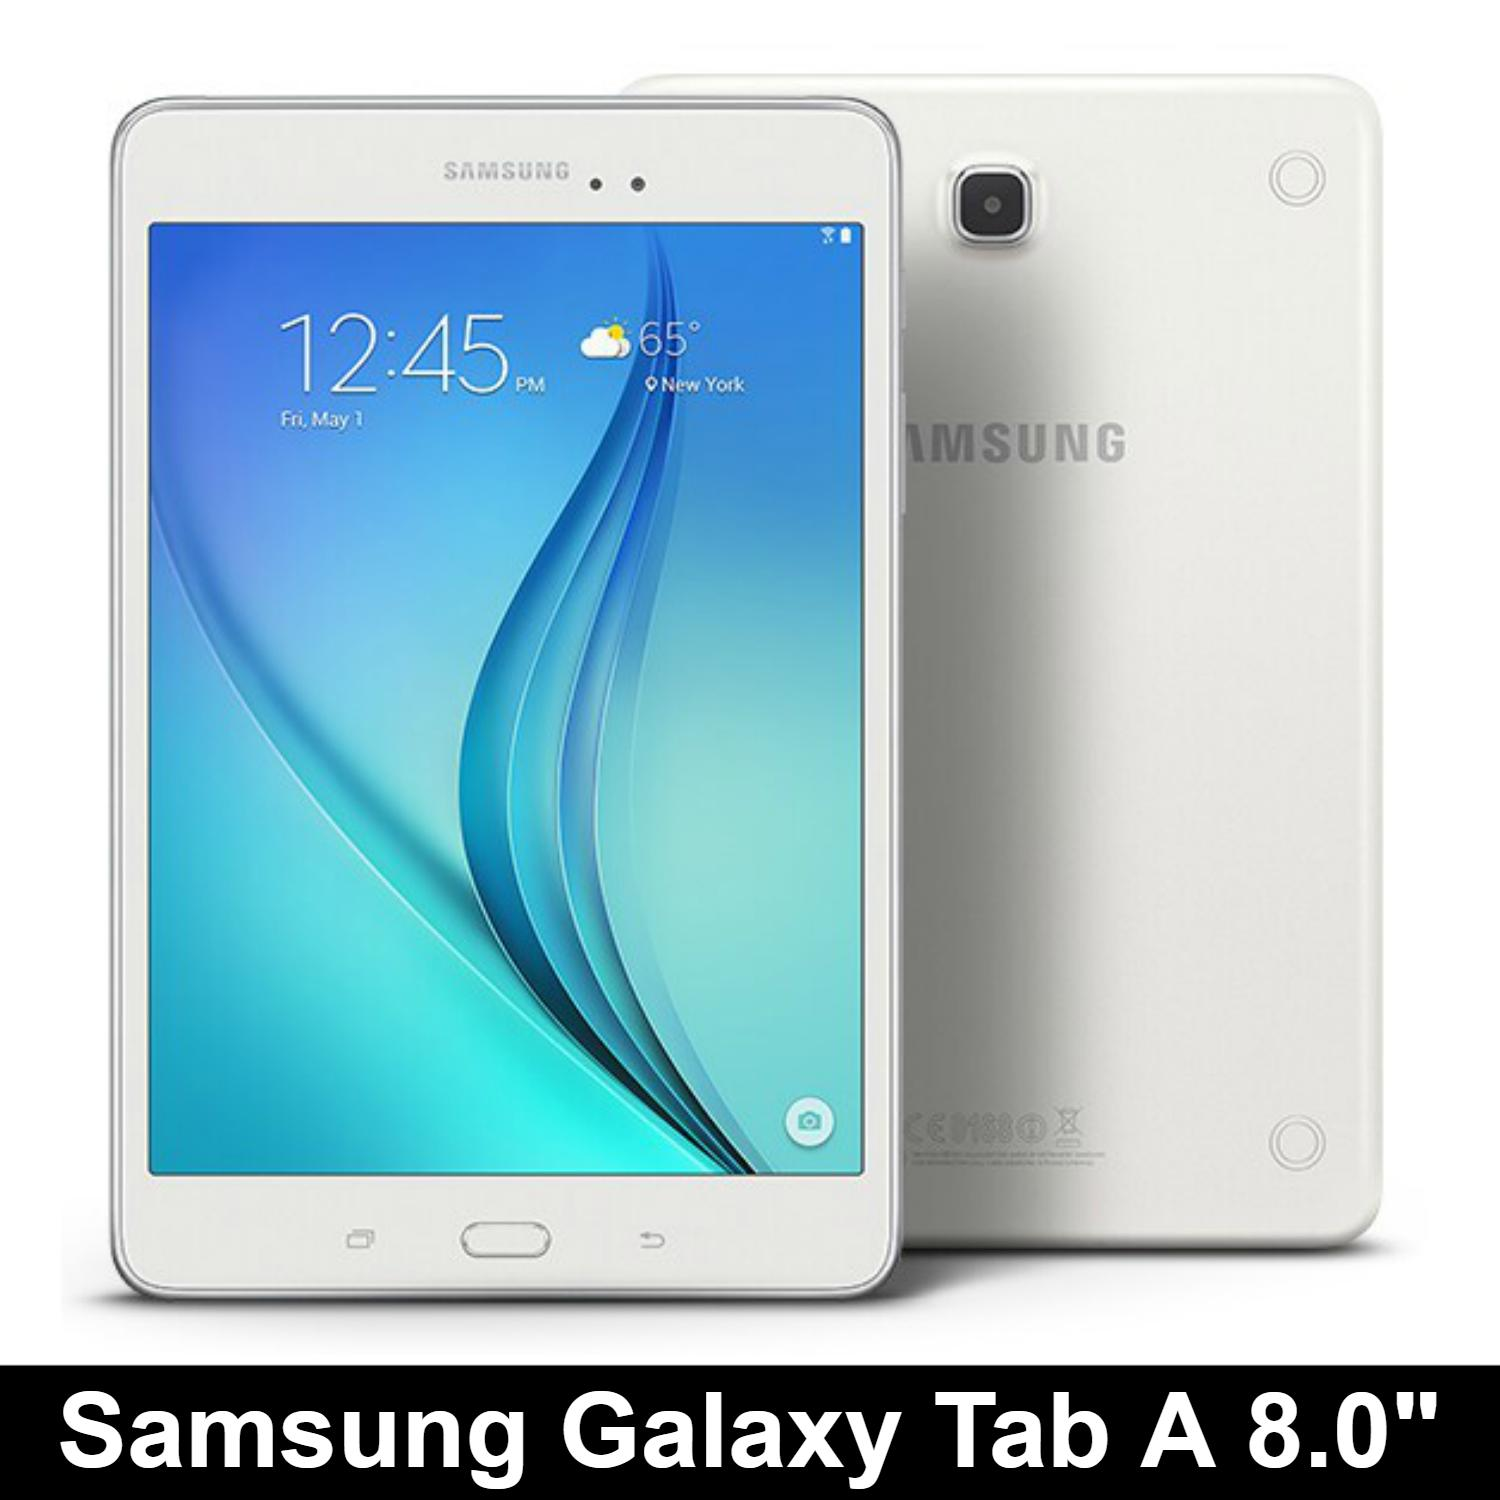 Samsung Galaxy Tab A / 8 0 inch / Wi-Fi only / 1 5GB RAM / 16GB ROM /  Android Tablet / Refurbished / Export set